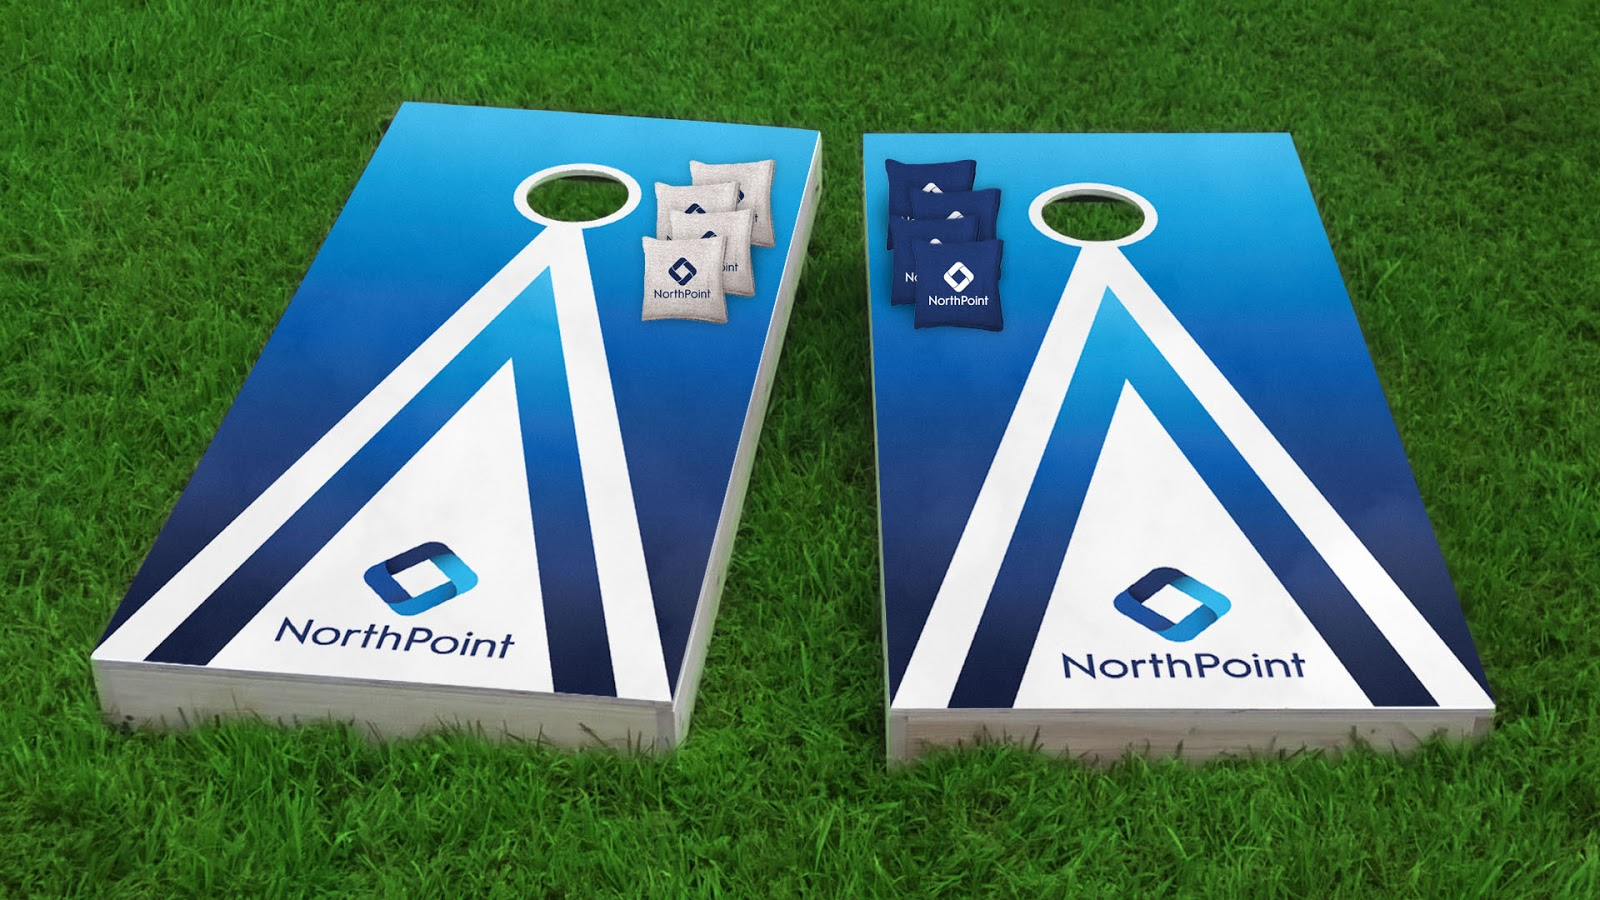 NorthPoint Cornhole set